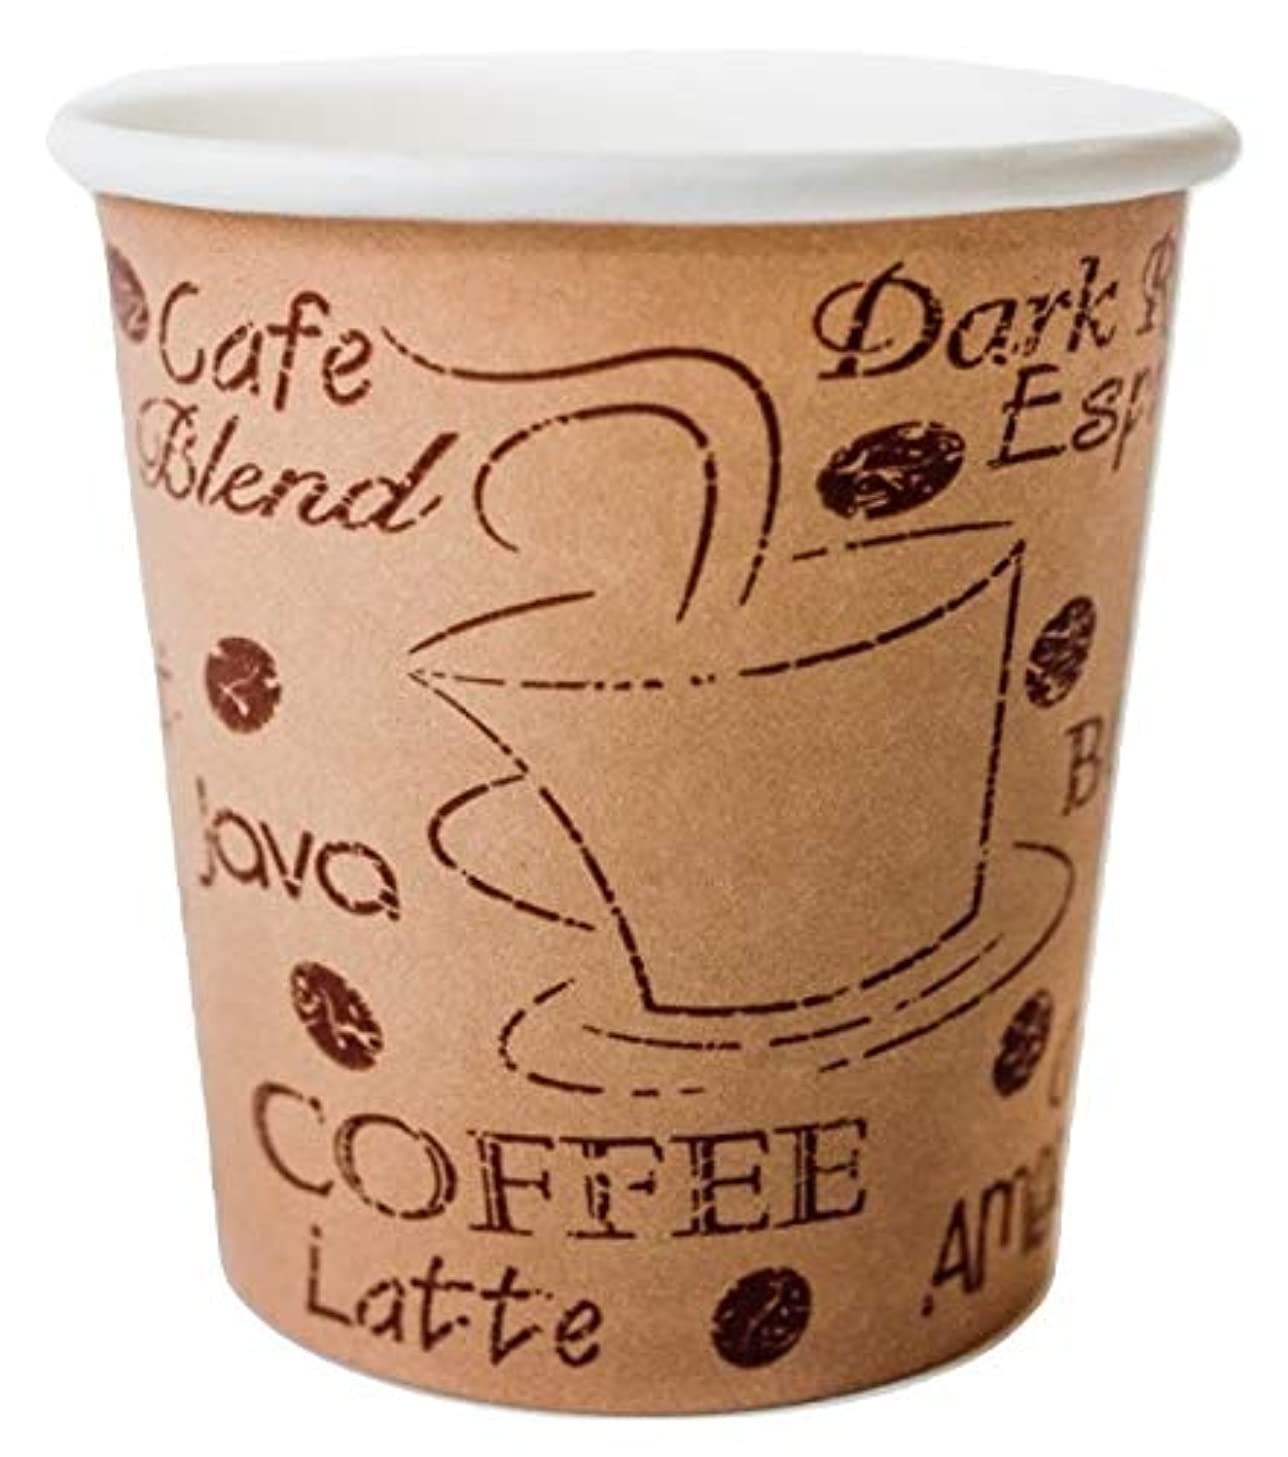 Disposable Espresso Coffee Cups - 4 Ounce - Café Design to Go Hot Cup - The Perfect Gift for the Espresso Lover in Your Life - 200 count